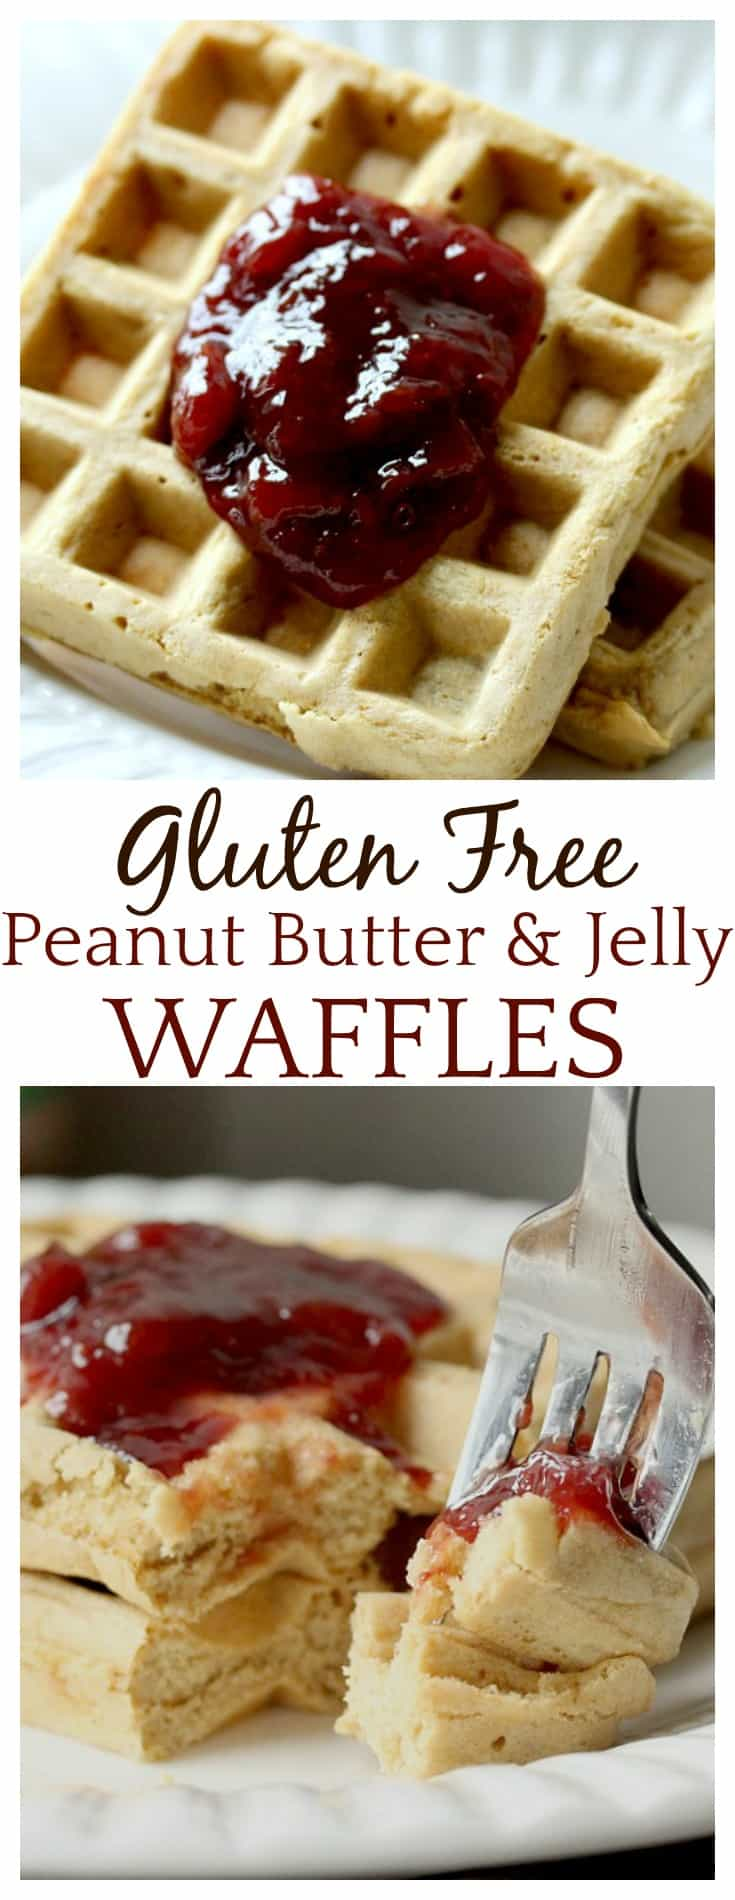 This is seriously the best gluten free waffle recipe I have ever made. Even my non-gluten free son wants these every day now! They are fluffy and have tons of peanut butter flavor! And you can't help but love the classic peanut butter and jelly flavor!